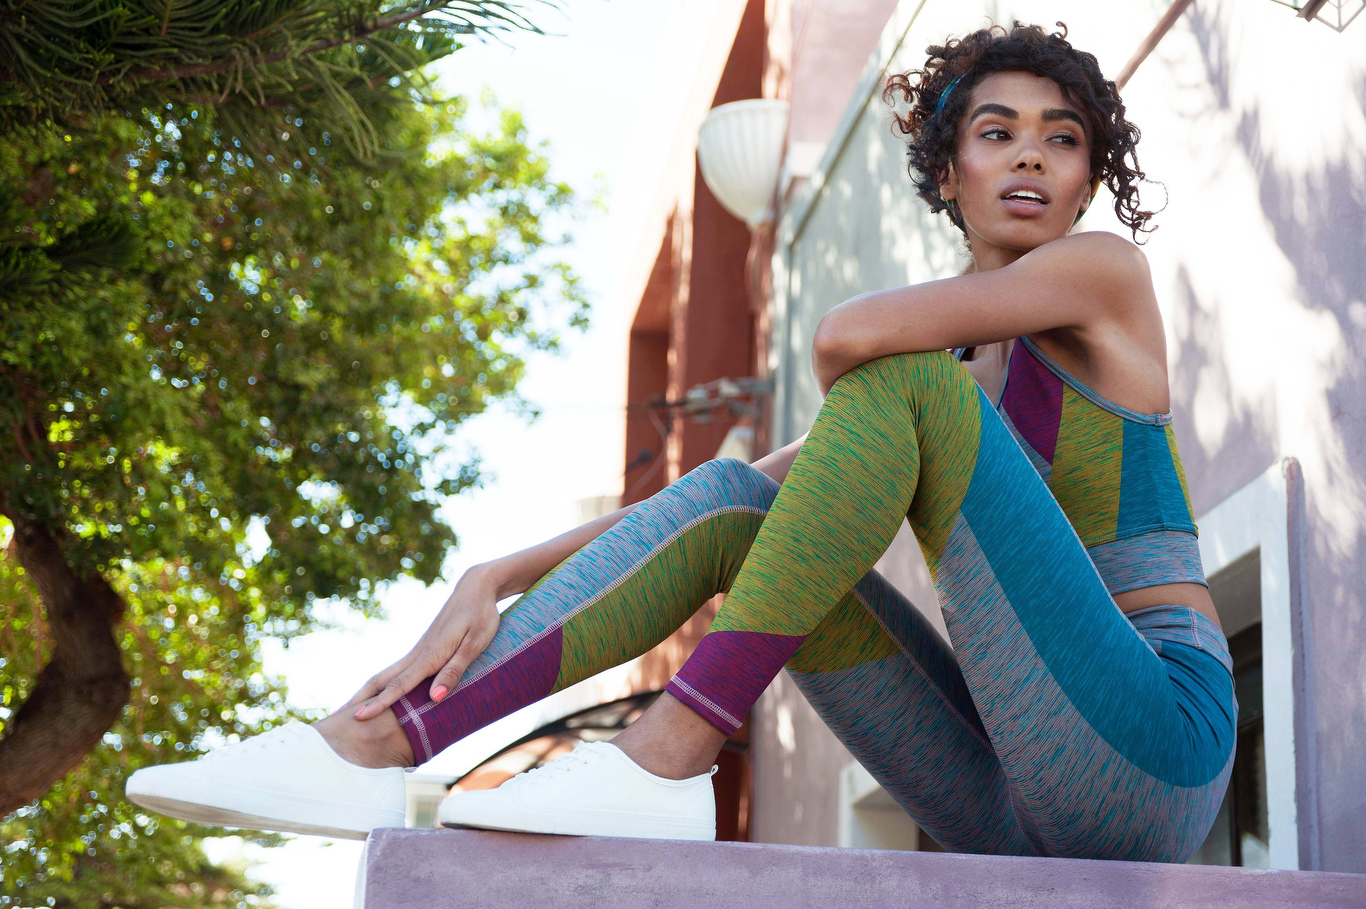 Creative athleisure wear from Sarah and Sorrentino